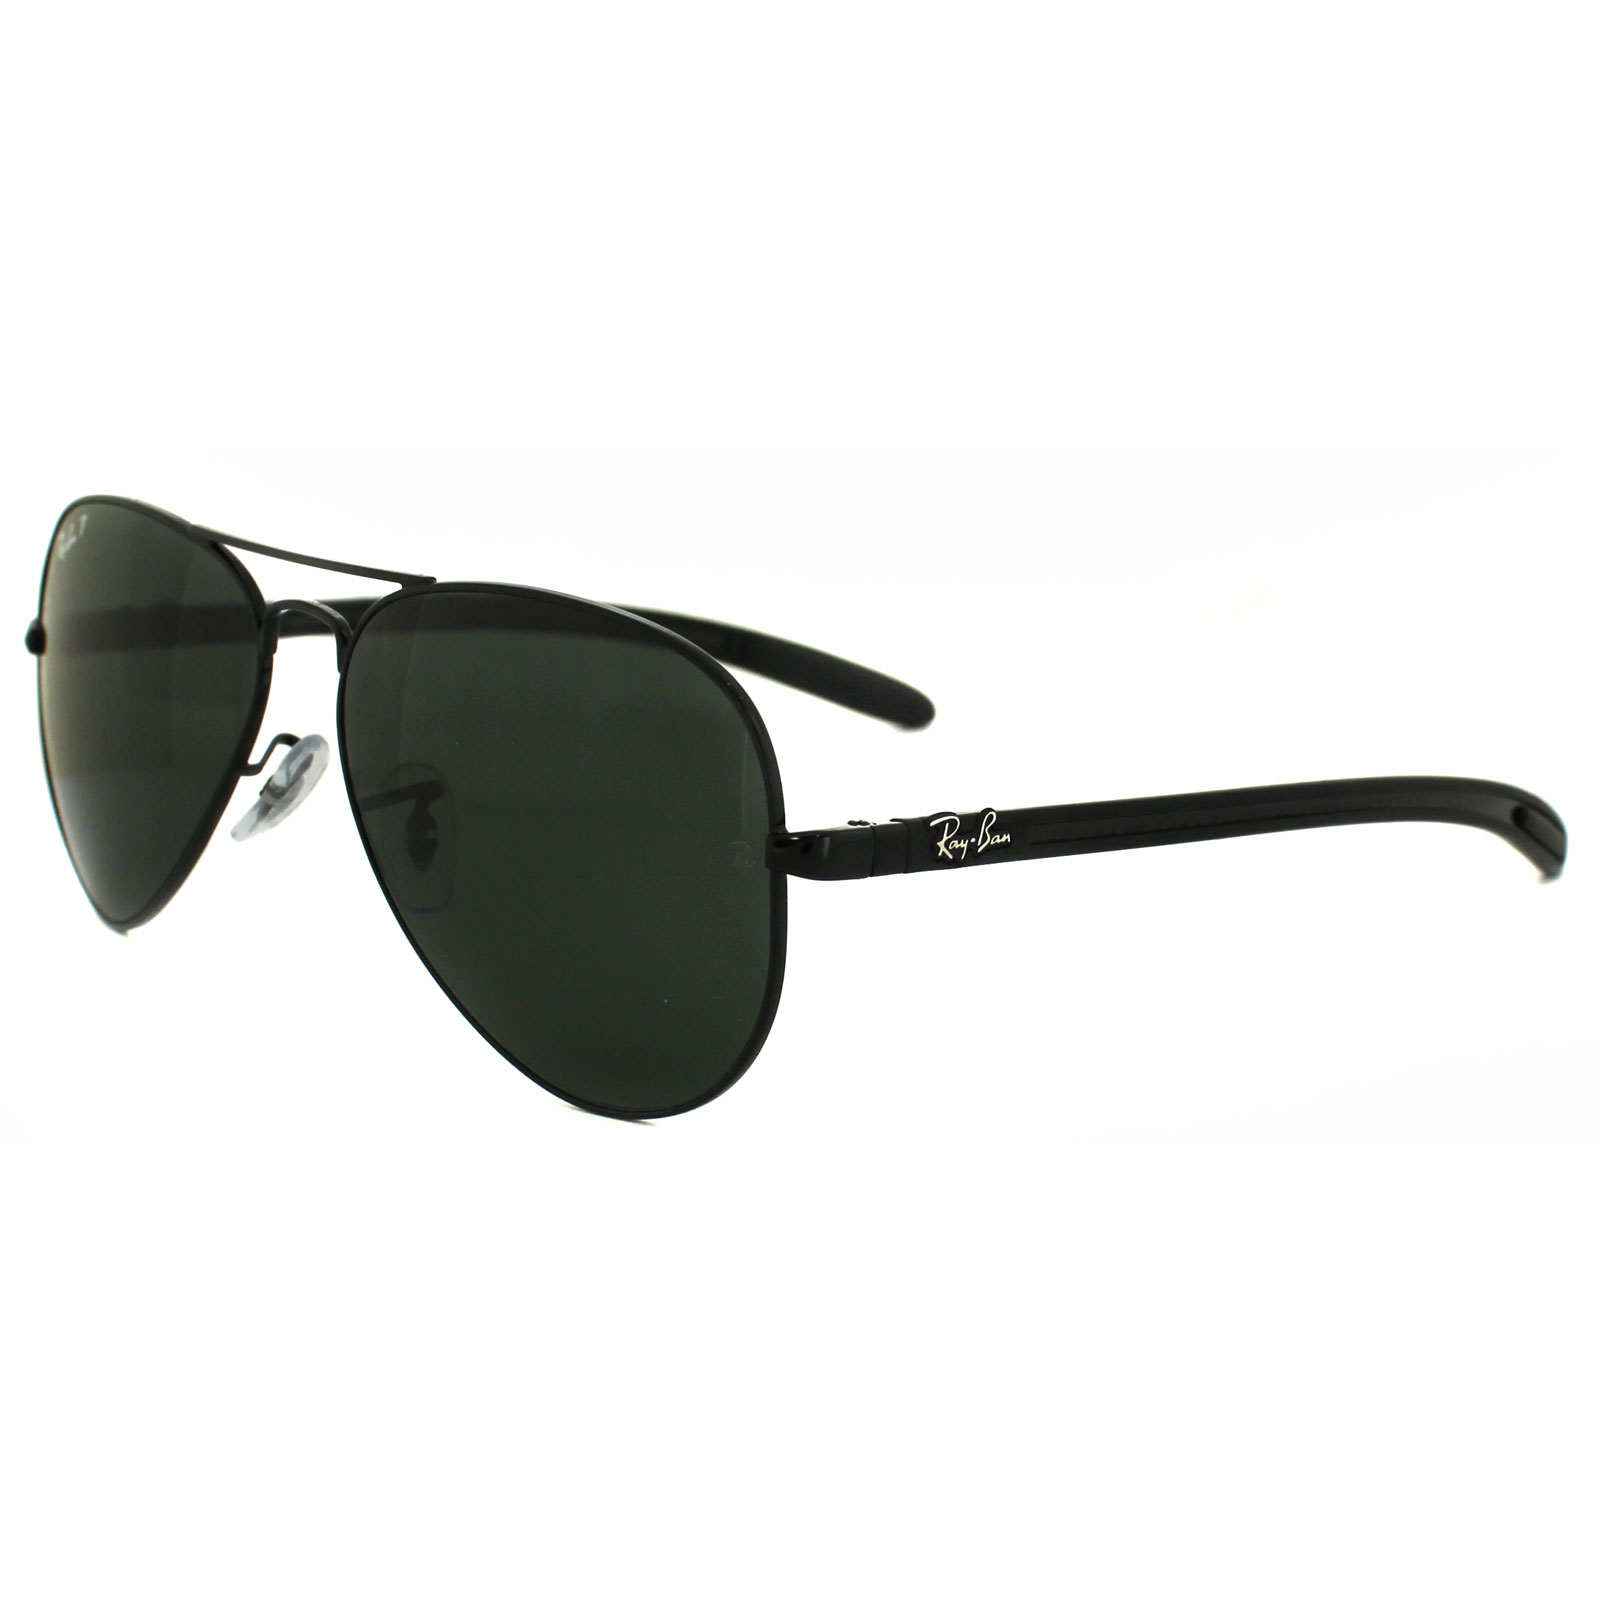 Polarized Ray Ban Sunglasses  ray ban sunglasses 8307 002 n5 black green polarized